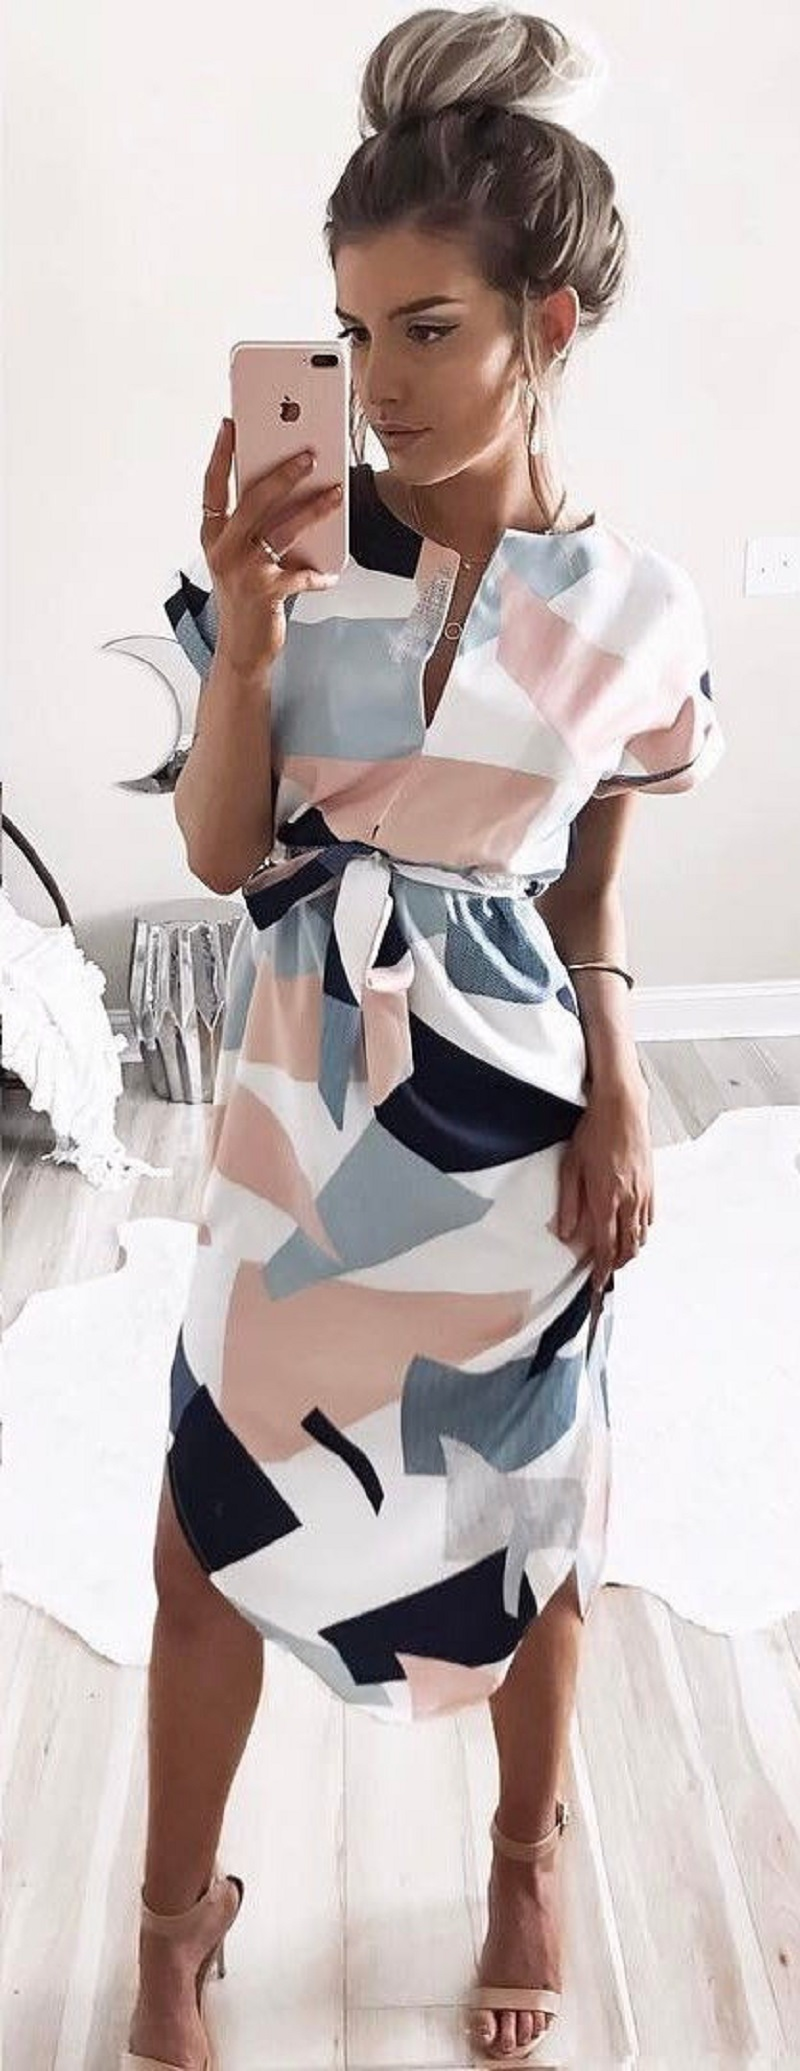 10pcs/lot Selegere Summer Dress Women Fashion Print Elegant Cute Sashes O-neck Sexy Slim Sheath Dress Women Dresses Vestidos 7